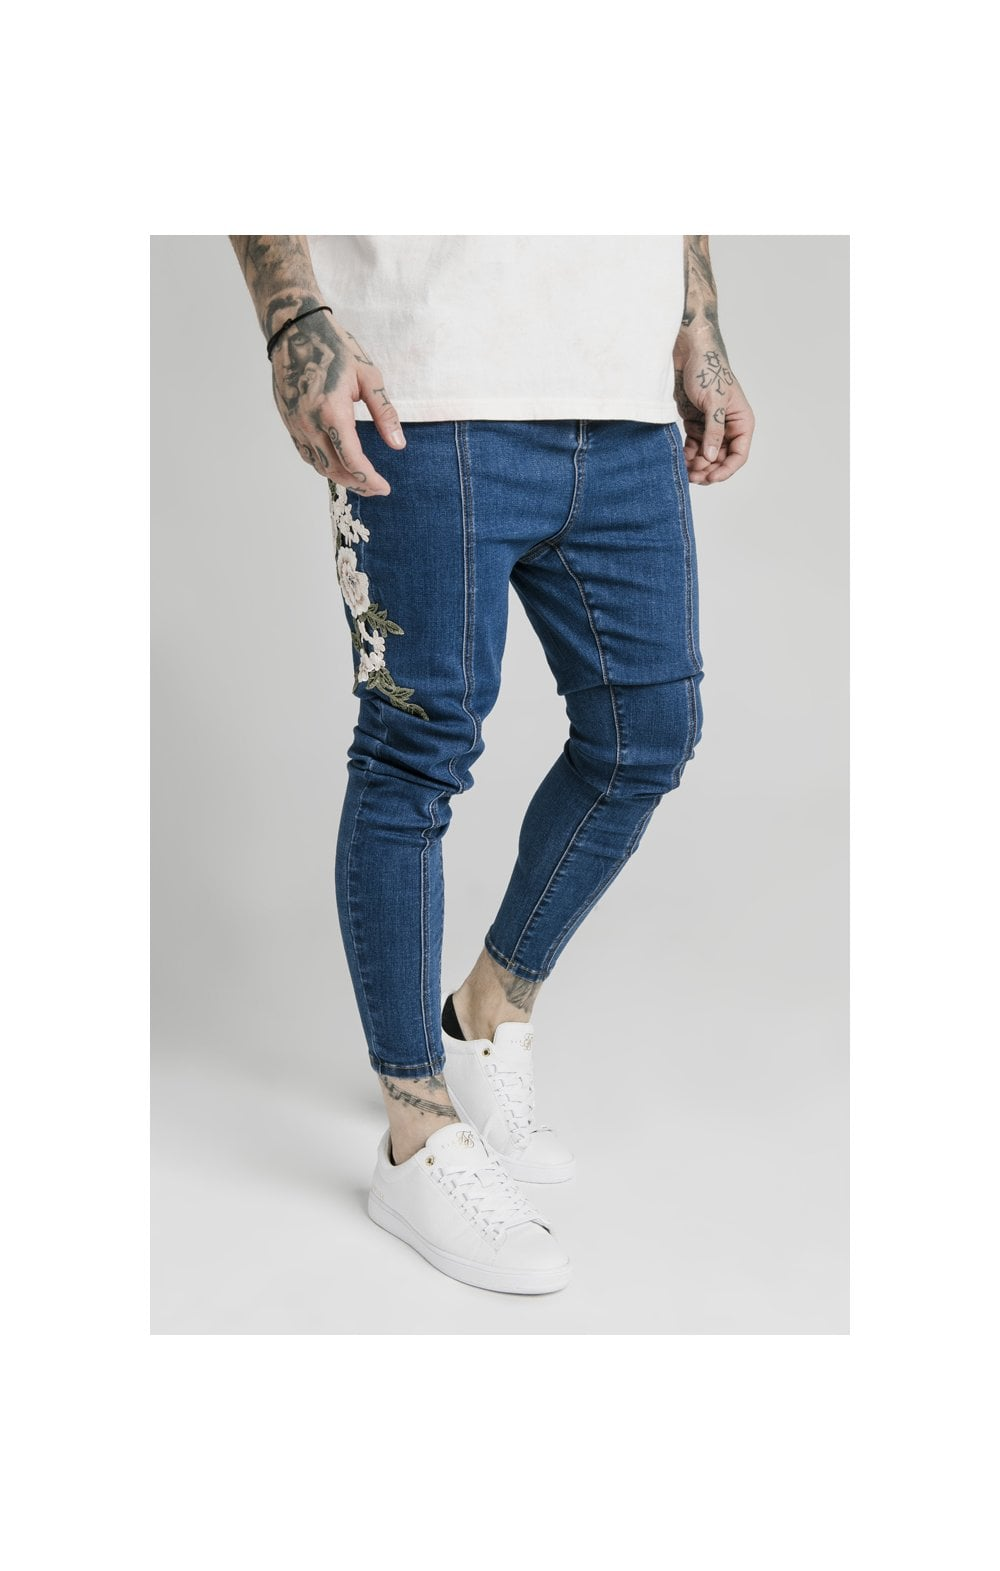 Load image into Gallery viewer, SikSilk Drop Crotch Pleated Appliqu Denims - Midstone (1)